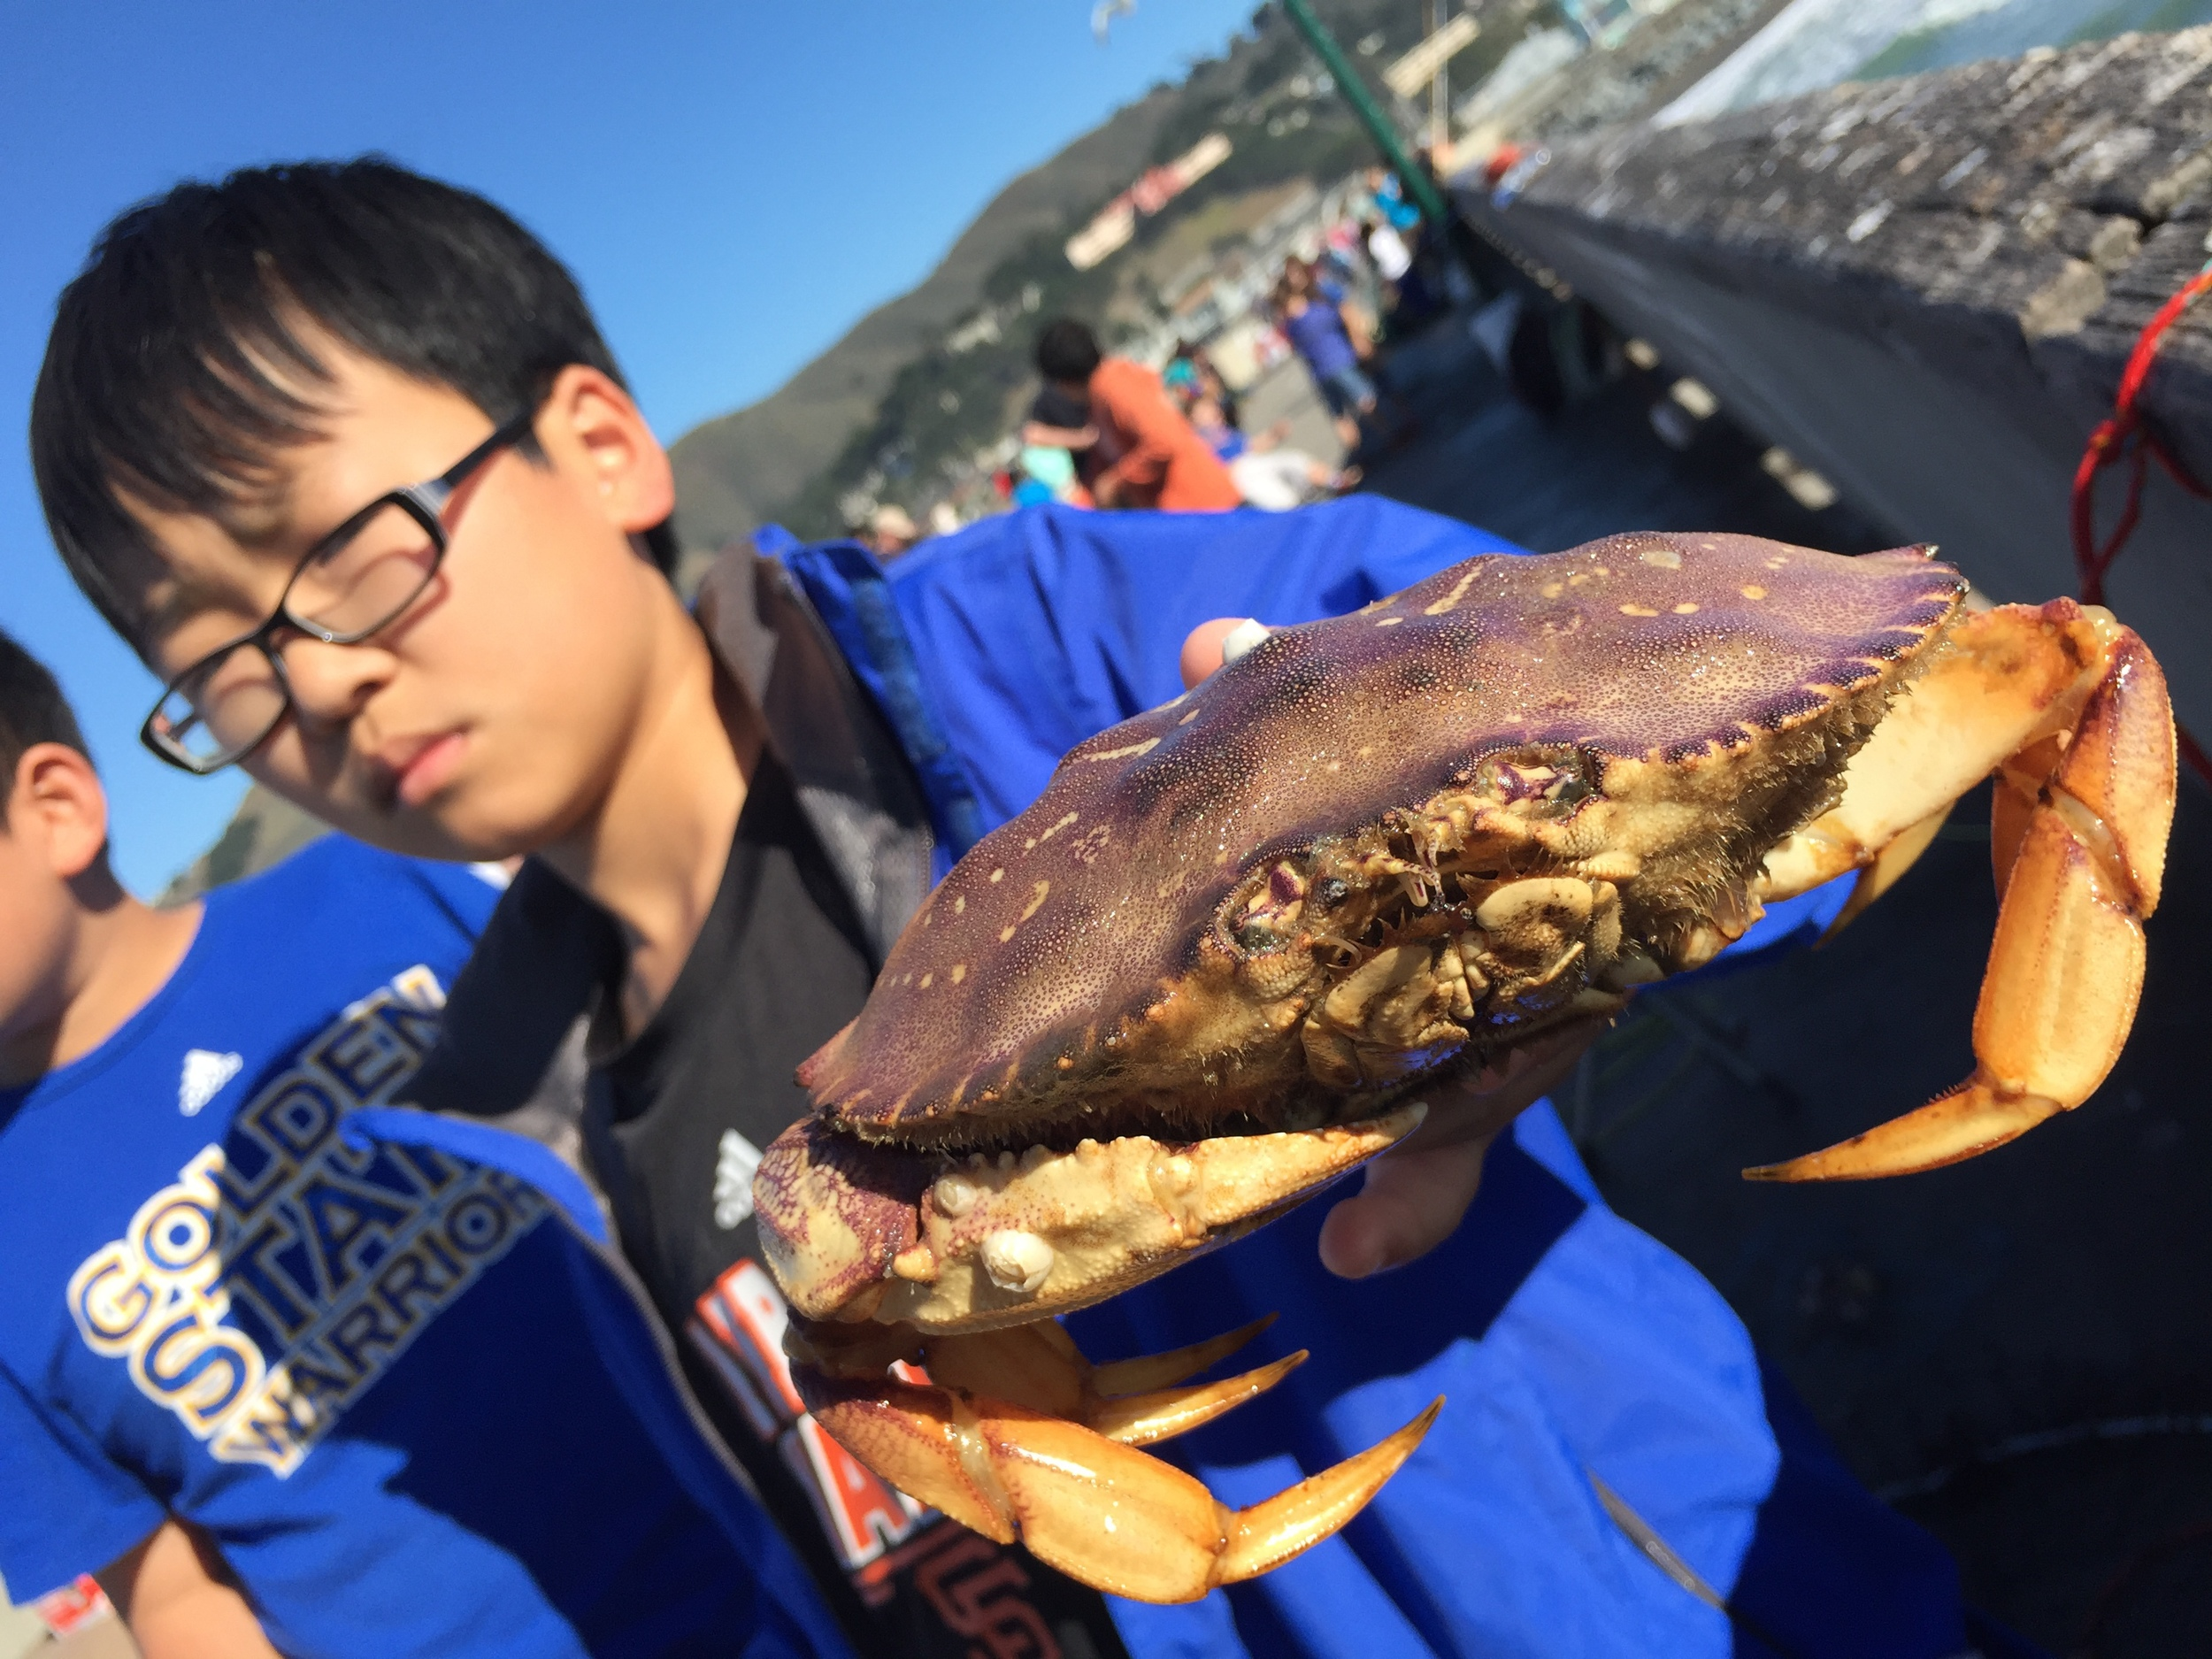 We'll come back for you next year, crab--to give you another uncomfortable close-up.